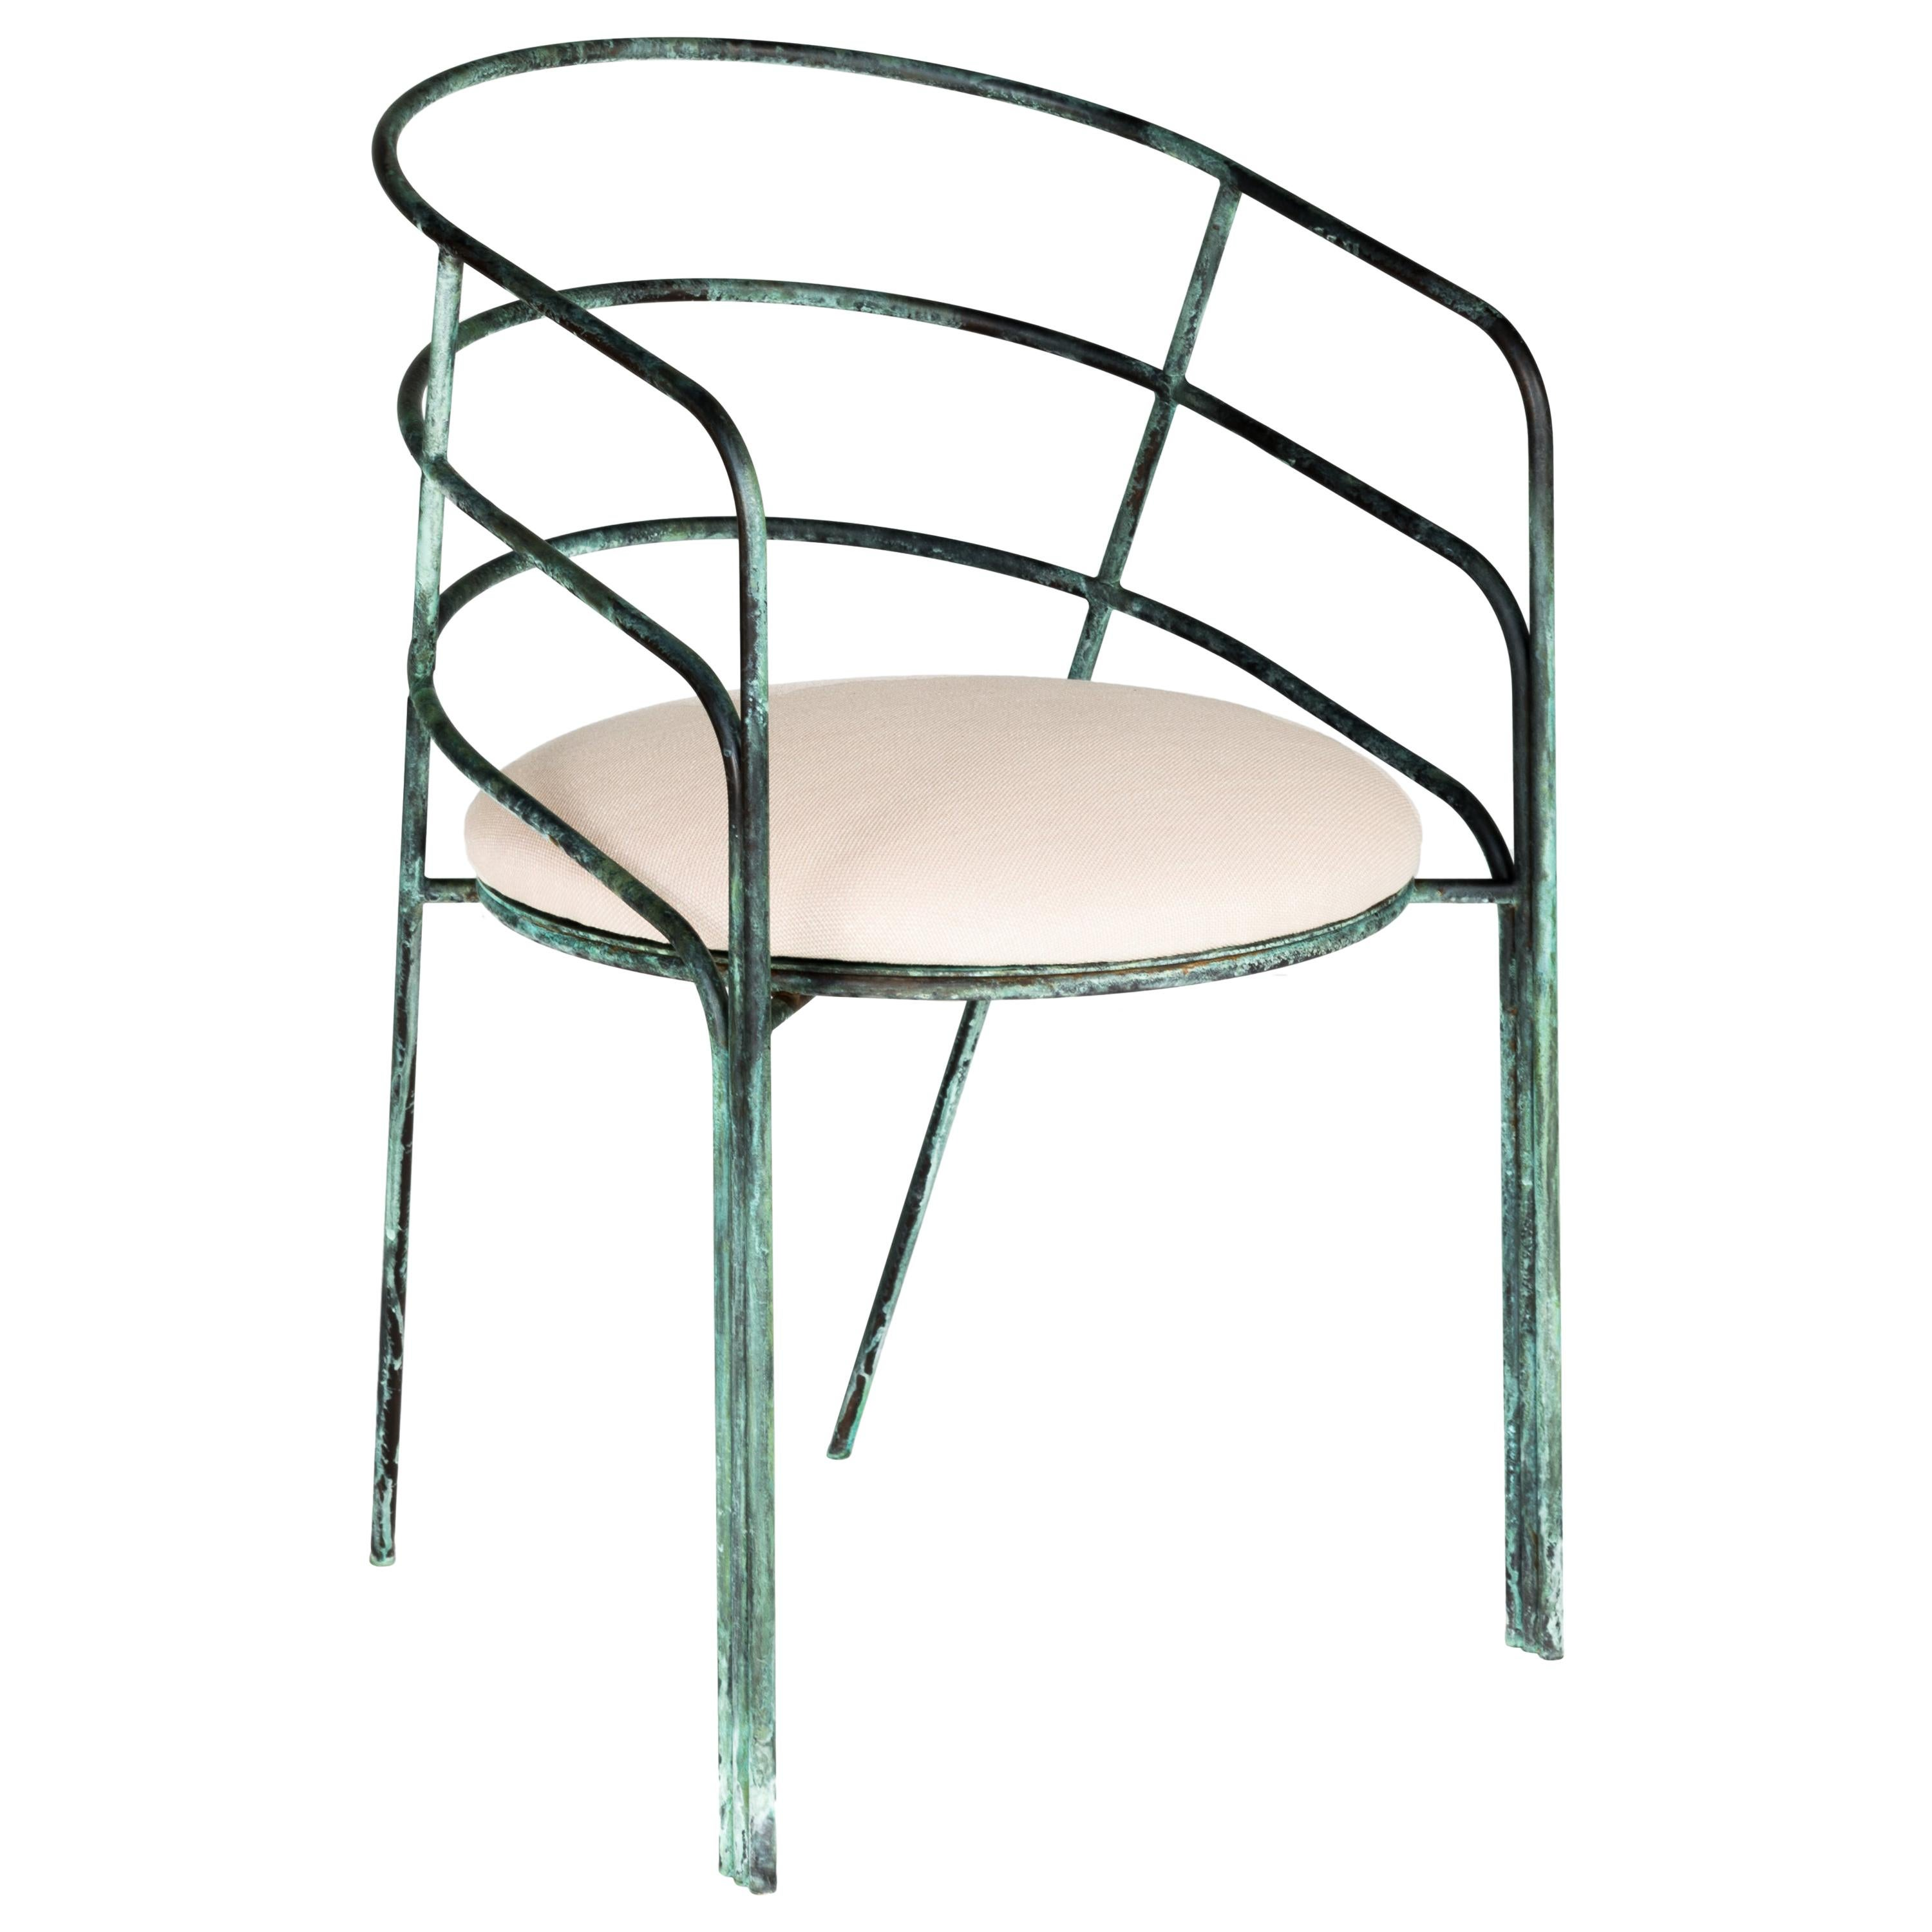 DeMille, Indoor/Outdoor Verdigris Stainless Steel Dining Chair by Laun